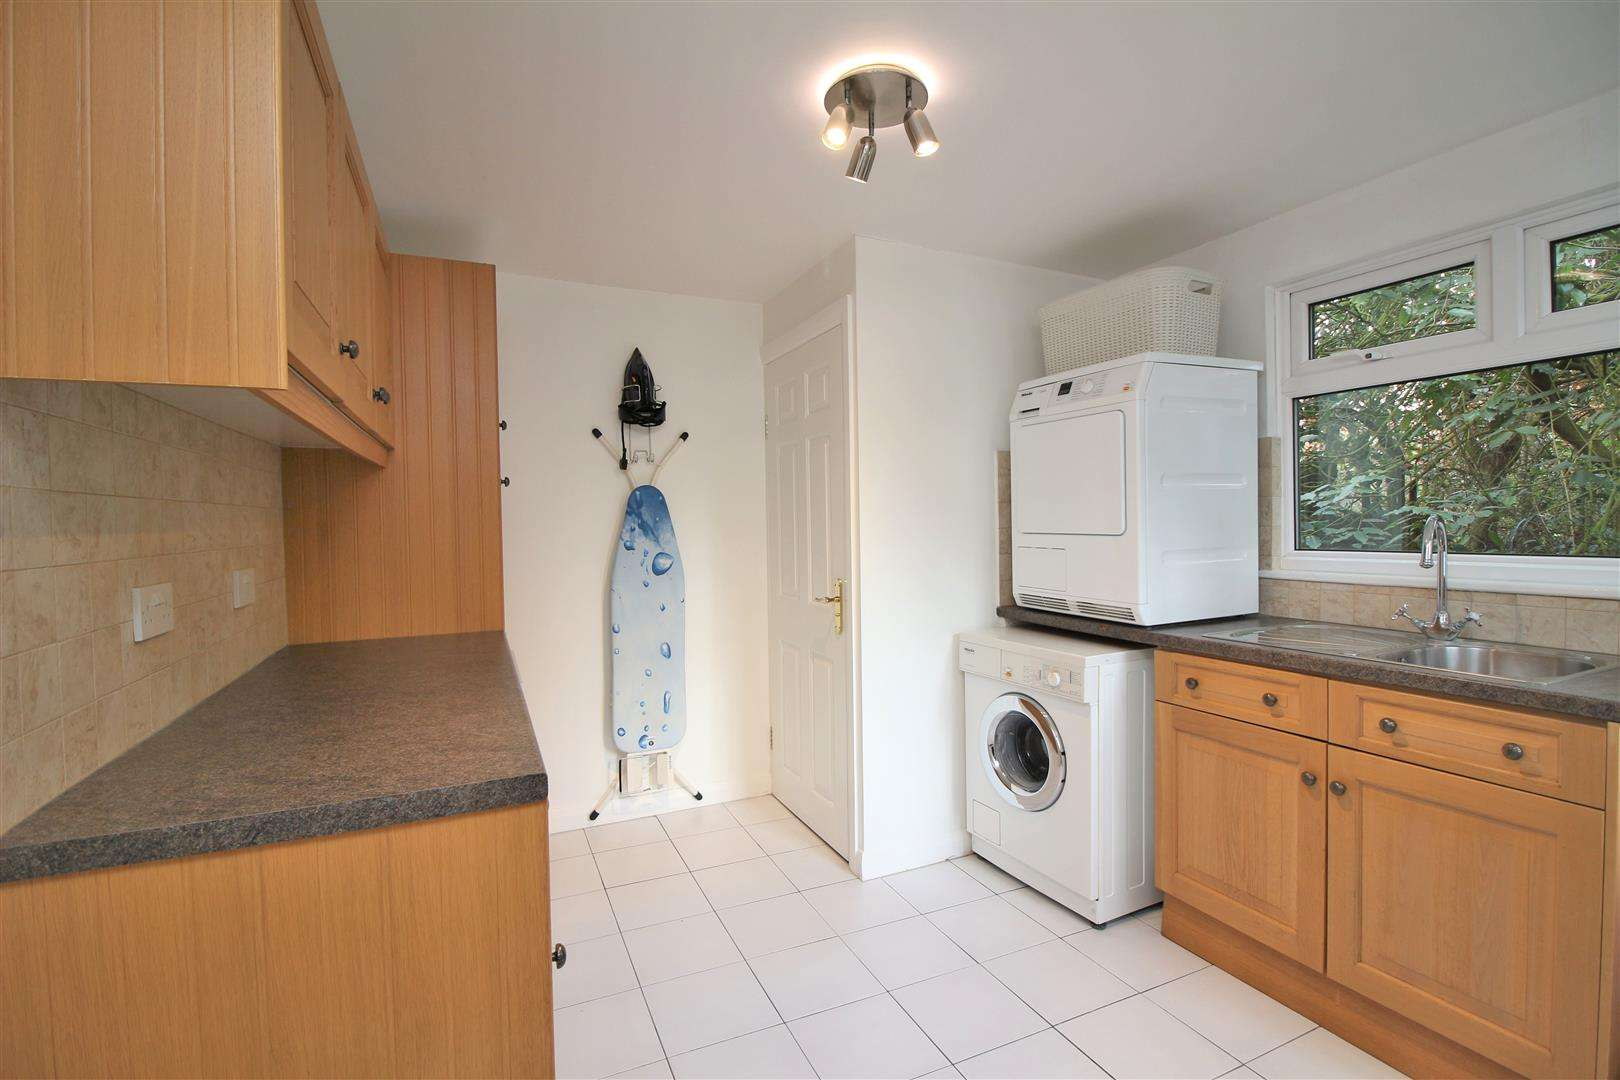 5 bed for sale - (Property Image 5)